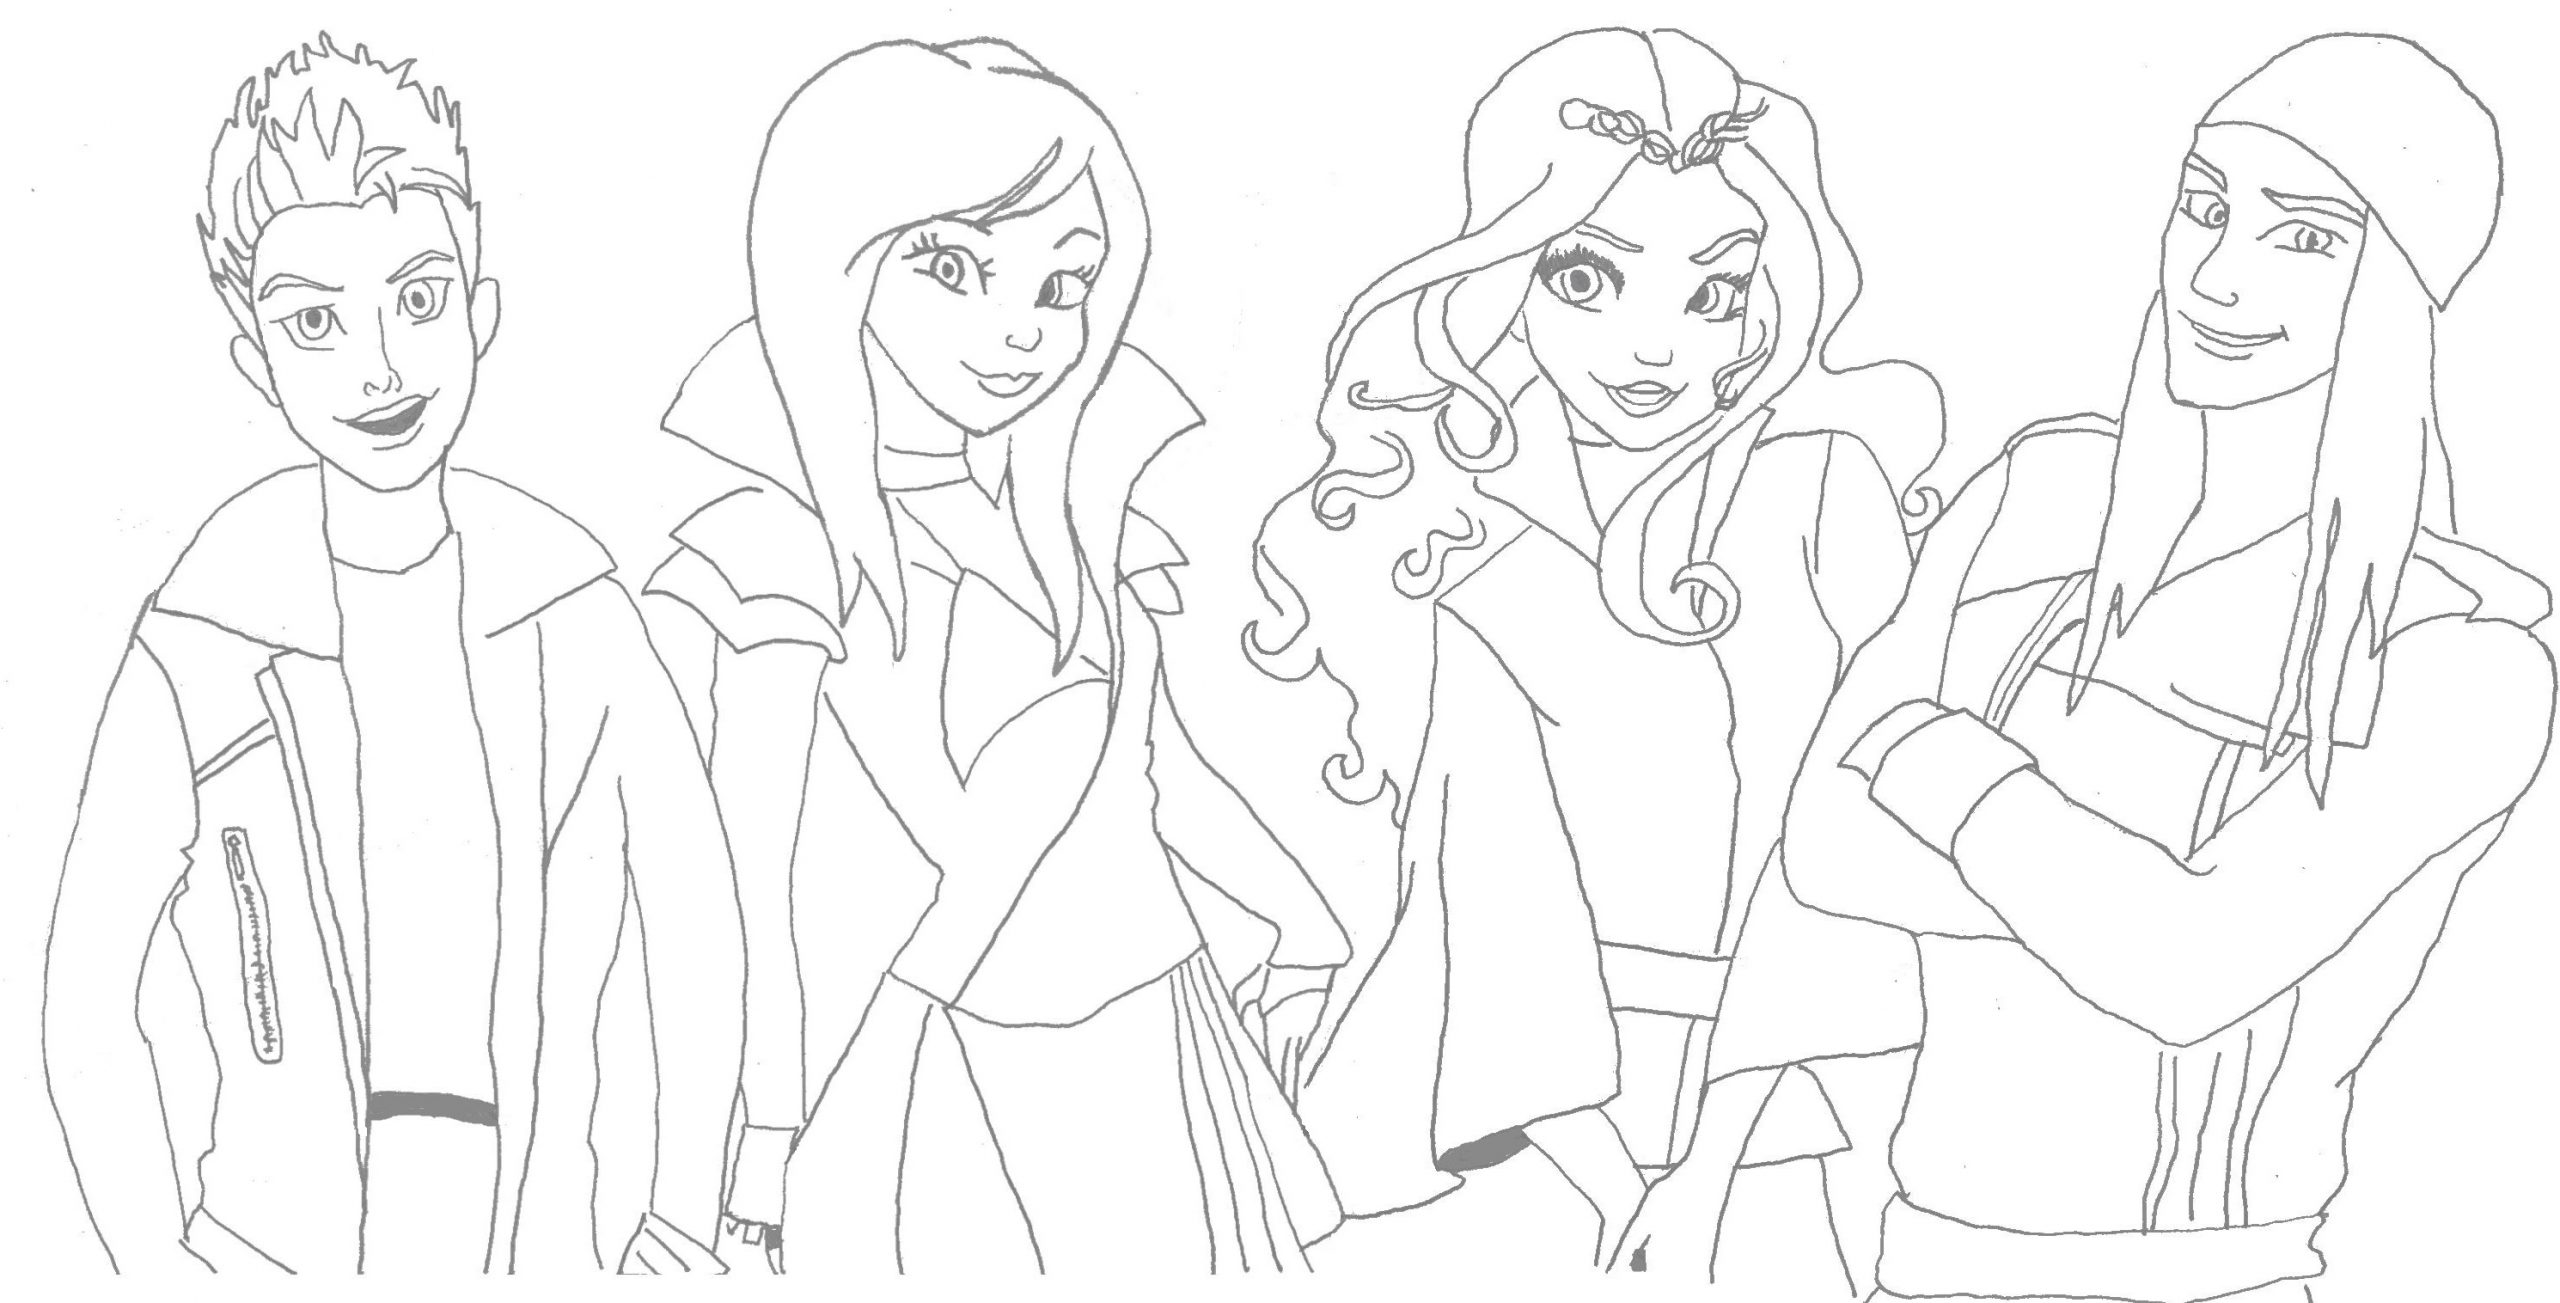 Coloring Pages Disneydants Coloring Pages Pictures To Print Mal And Evie Celia Excelent Disney Descendants Coloring Pages Photo Ideas Ny19 Votes Coloring Home